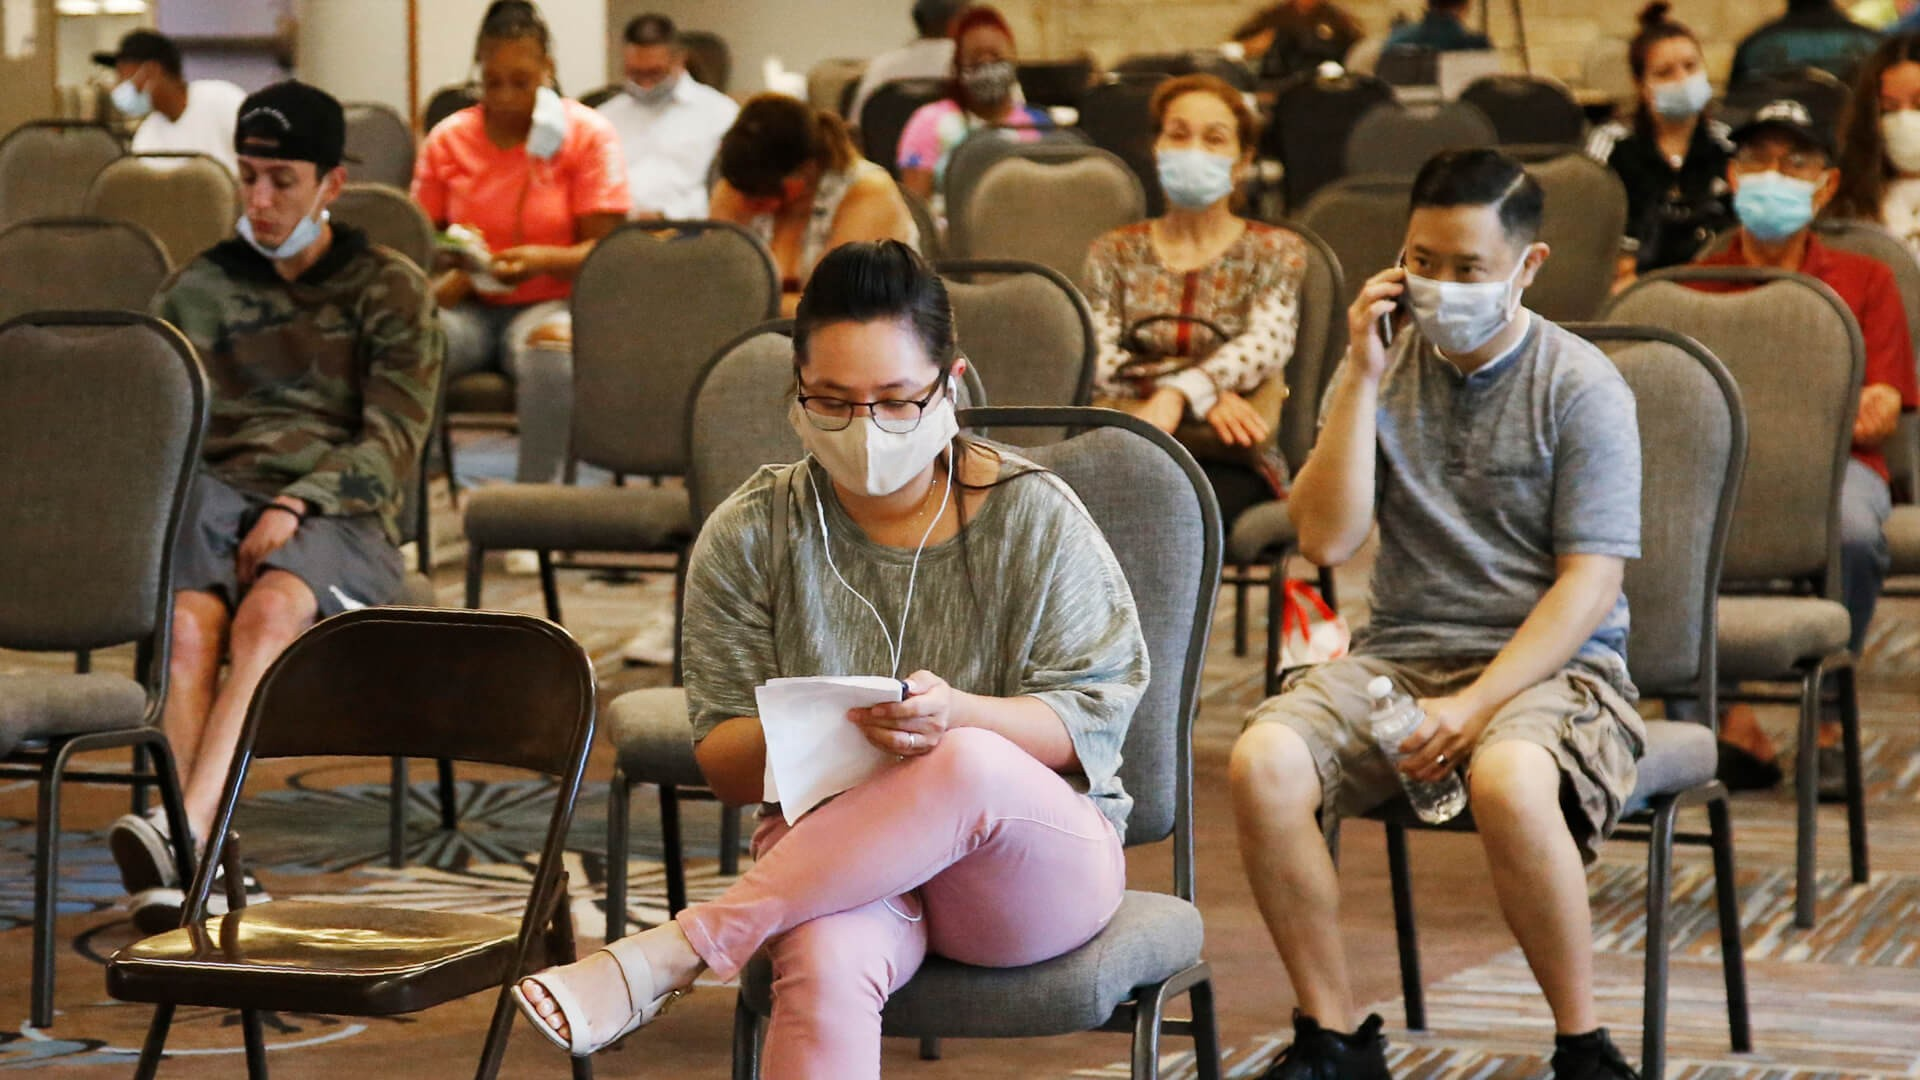 Mandatory Credit: Photo by Sue Ogrocki/AP/Shutterstock (10706877b)People wait to speak with representatives from the Oklahoma Employment Security Commission about unemployment claims, in Midwest City, Okla.